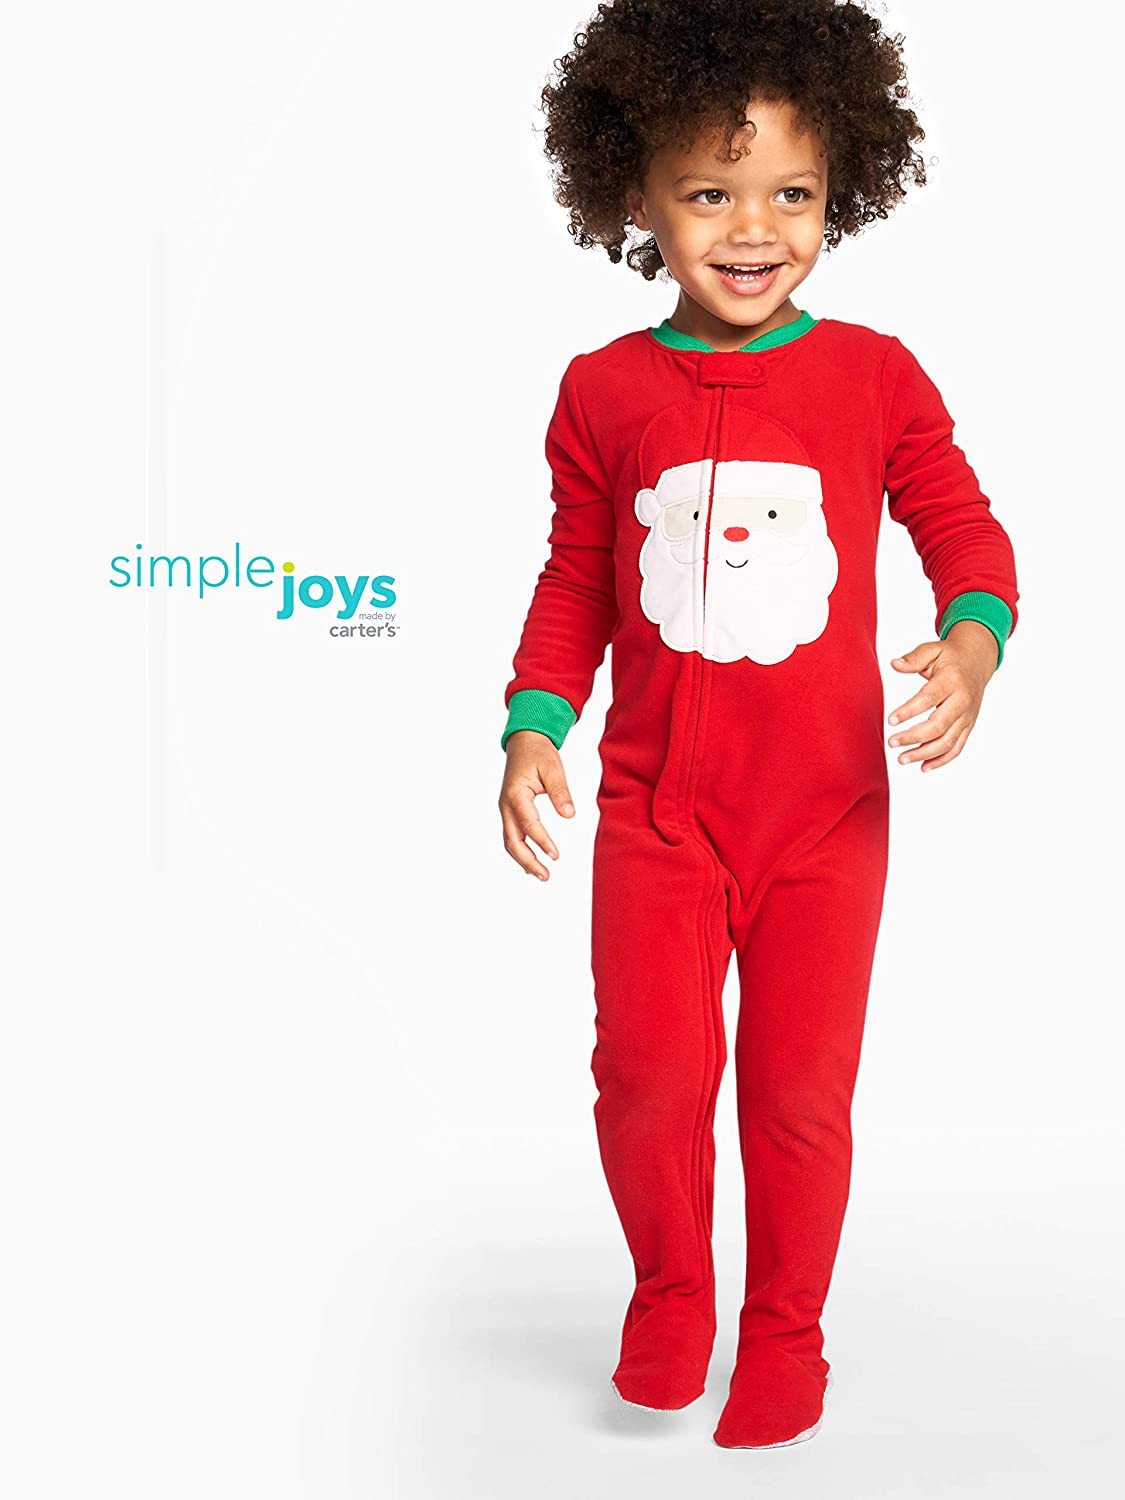 Simple Joys by Carters Baby and Toddler 2-Pack Holiday Loose Fit Fleece Footed Pajamas